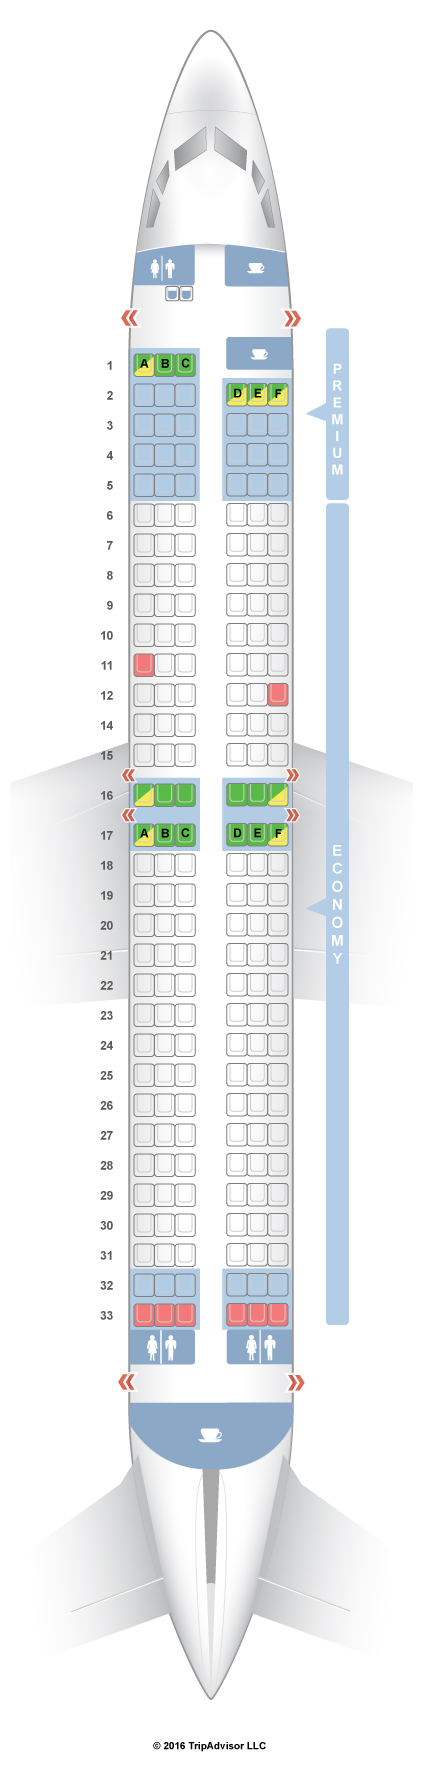 Seatguru Seat Map Ryanair Boeing 737 800 738 Seatguru Spirit Airlines Airbus